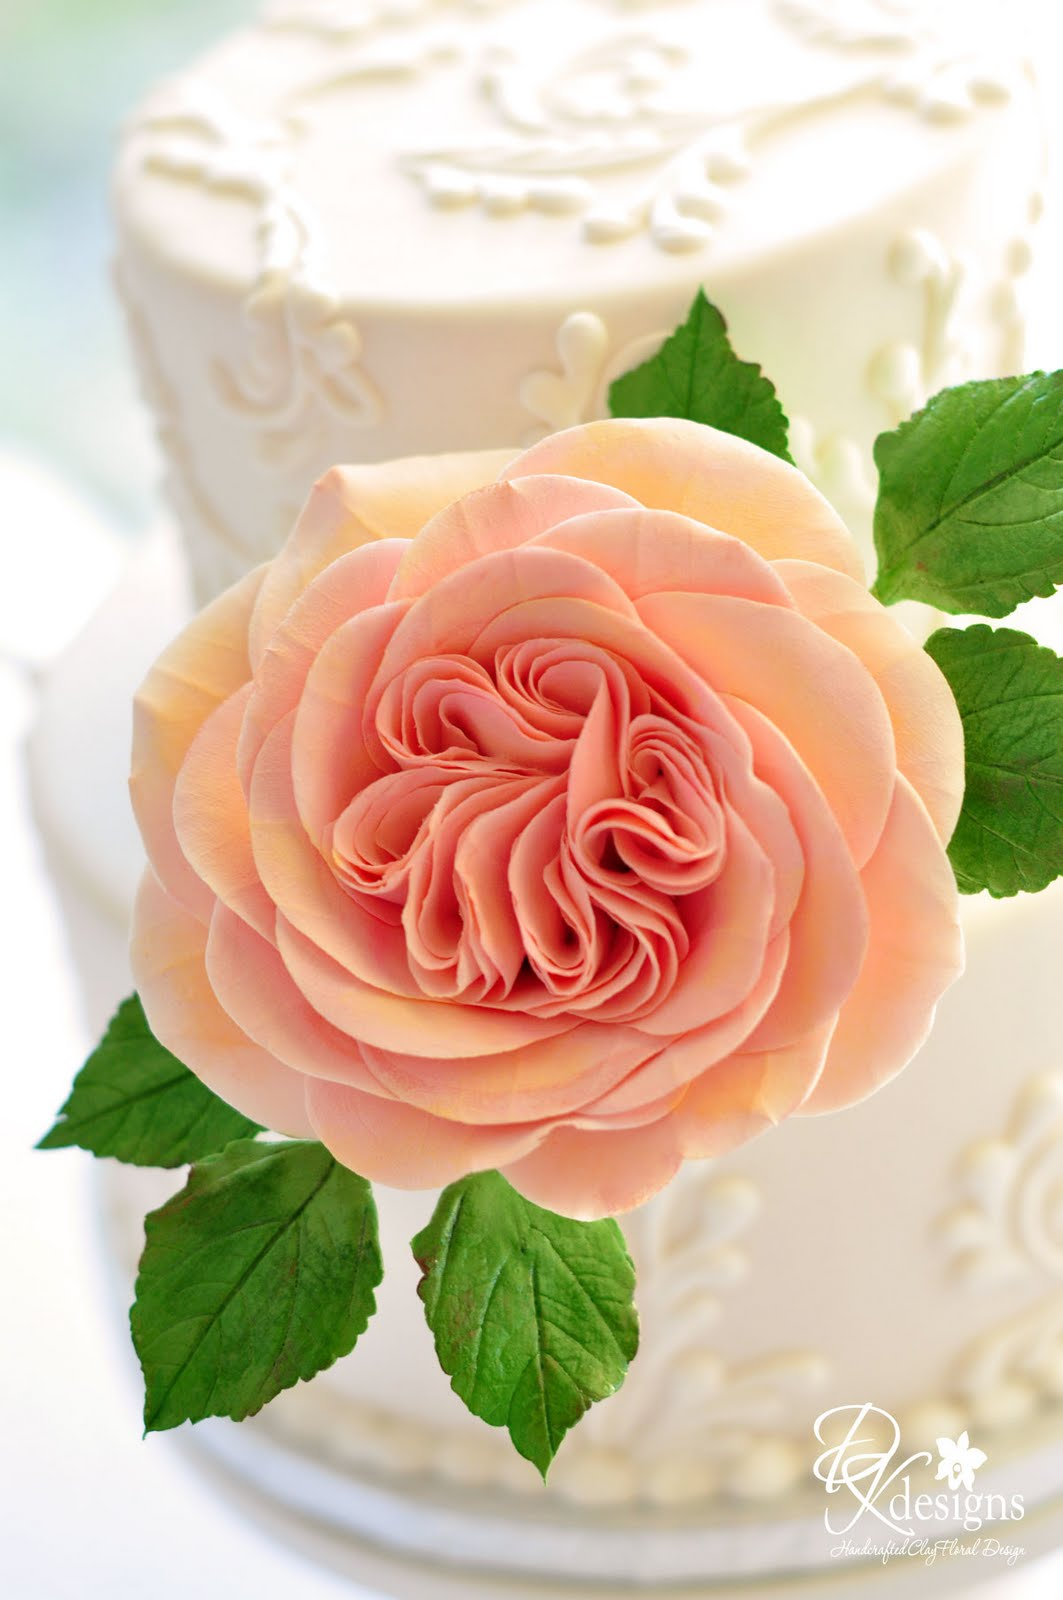 Another Etsy Bride Asked Me If I Could Make A 4 Inch Peach Rose For Her Wedding Cake She Send Photo Of What Had